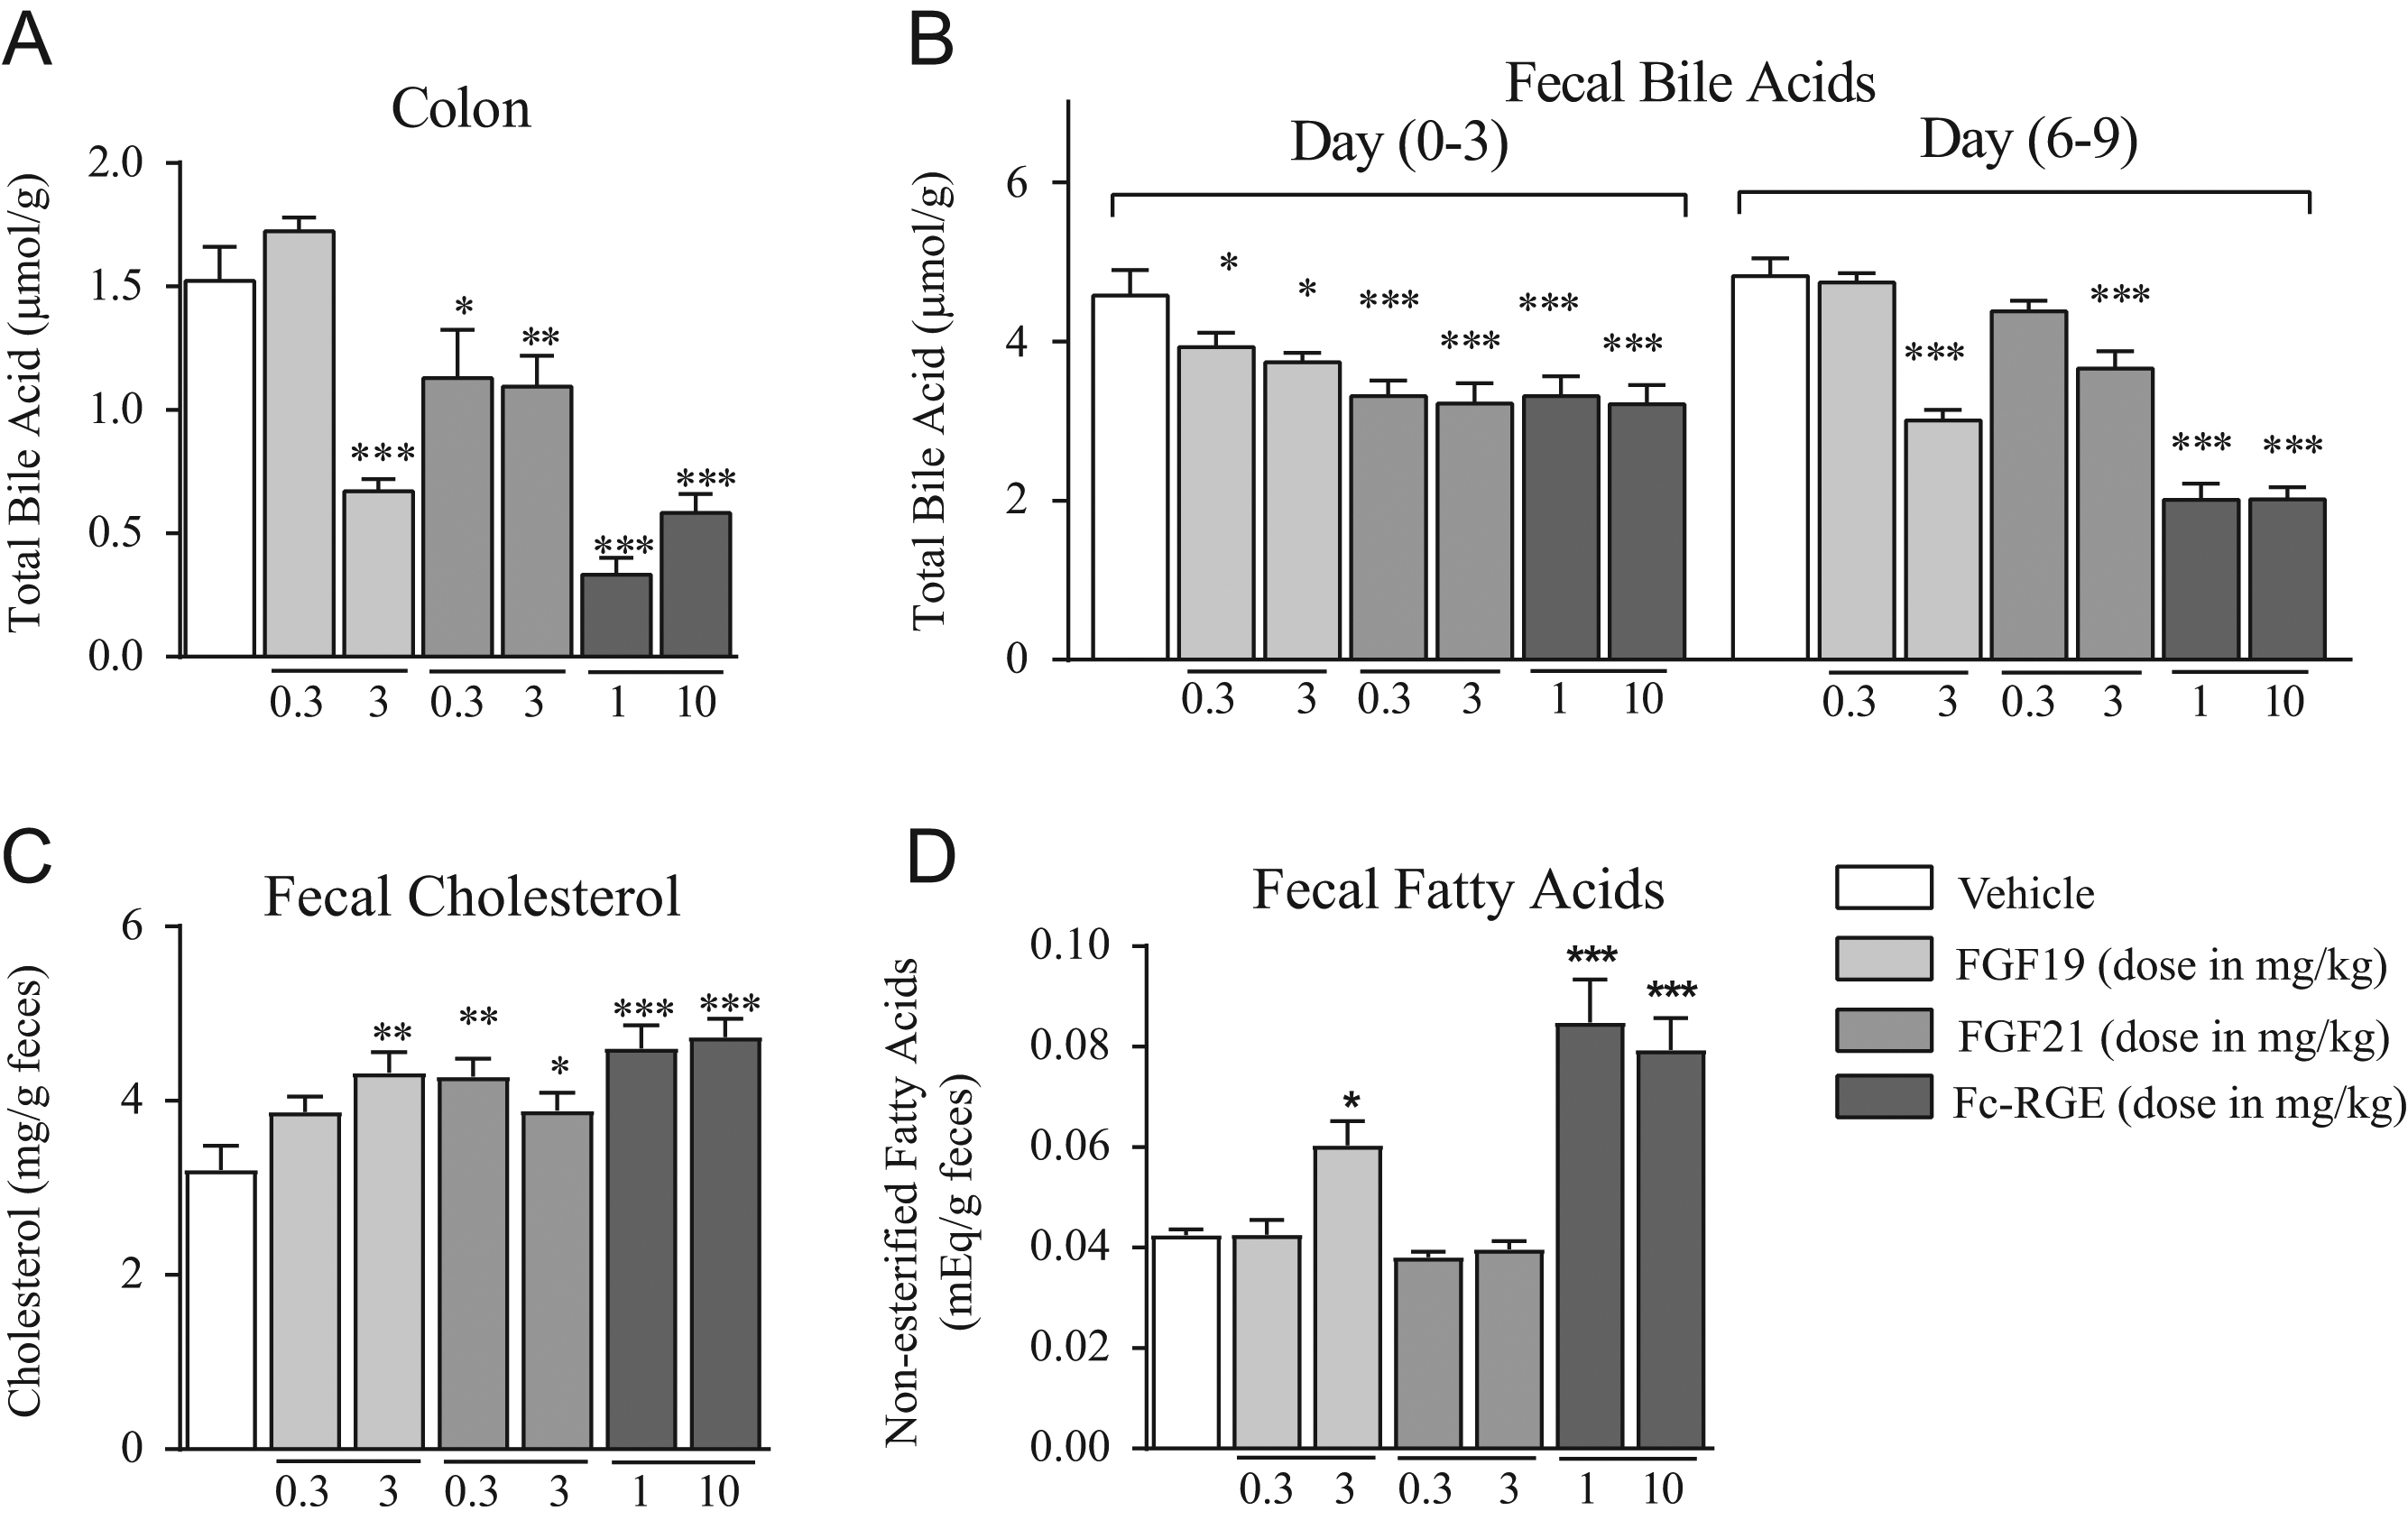 FGF21 acts as a negative regulator of bile acid synthesis in